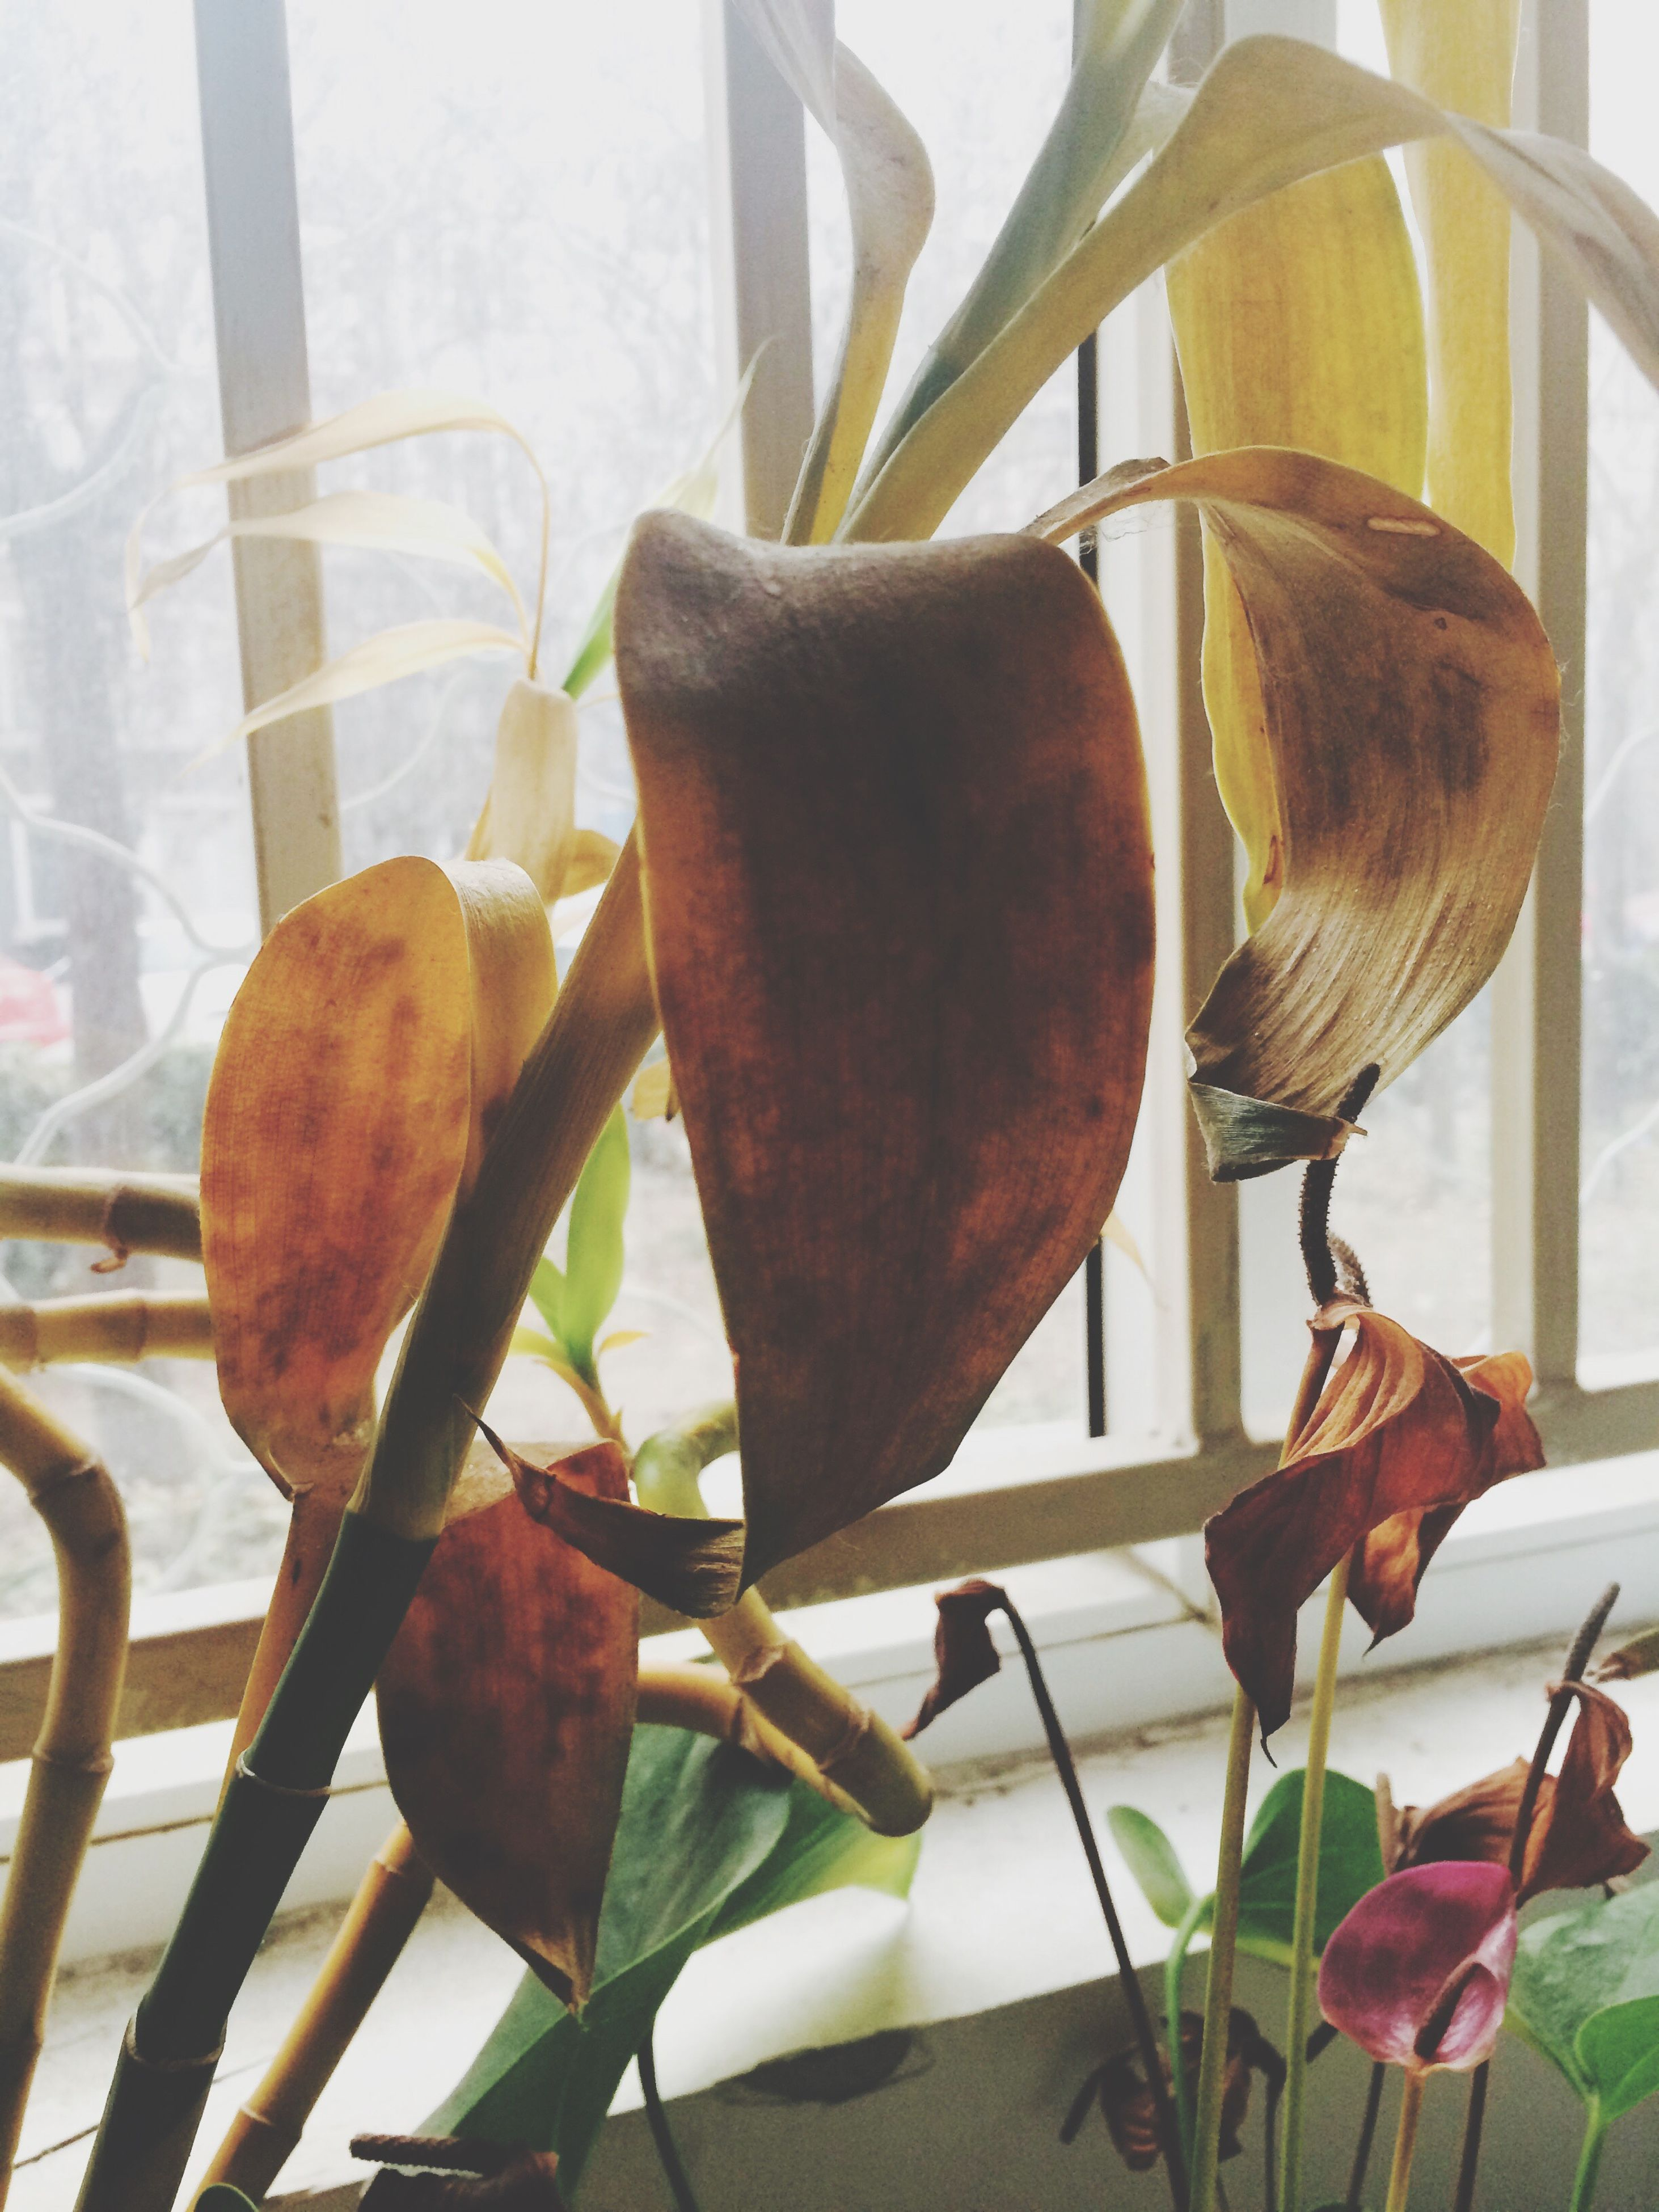 close-up, leaf, freshness, growth, plant, focus on foreground, indoors, nature, fragility, day, table, no people, stem, beauty in nature, dry, food and drink, sunlight, brown, flower